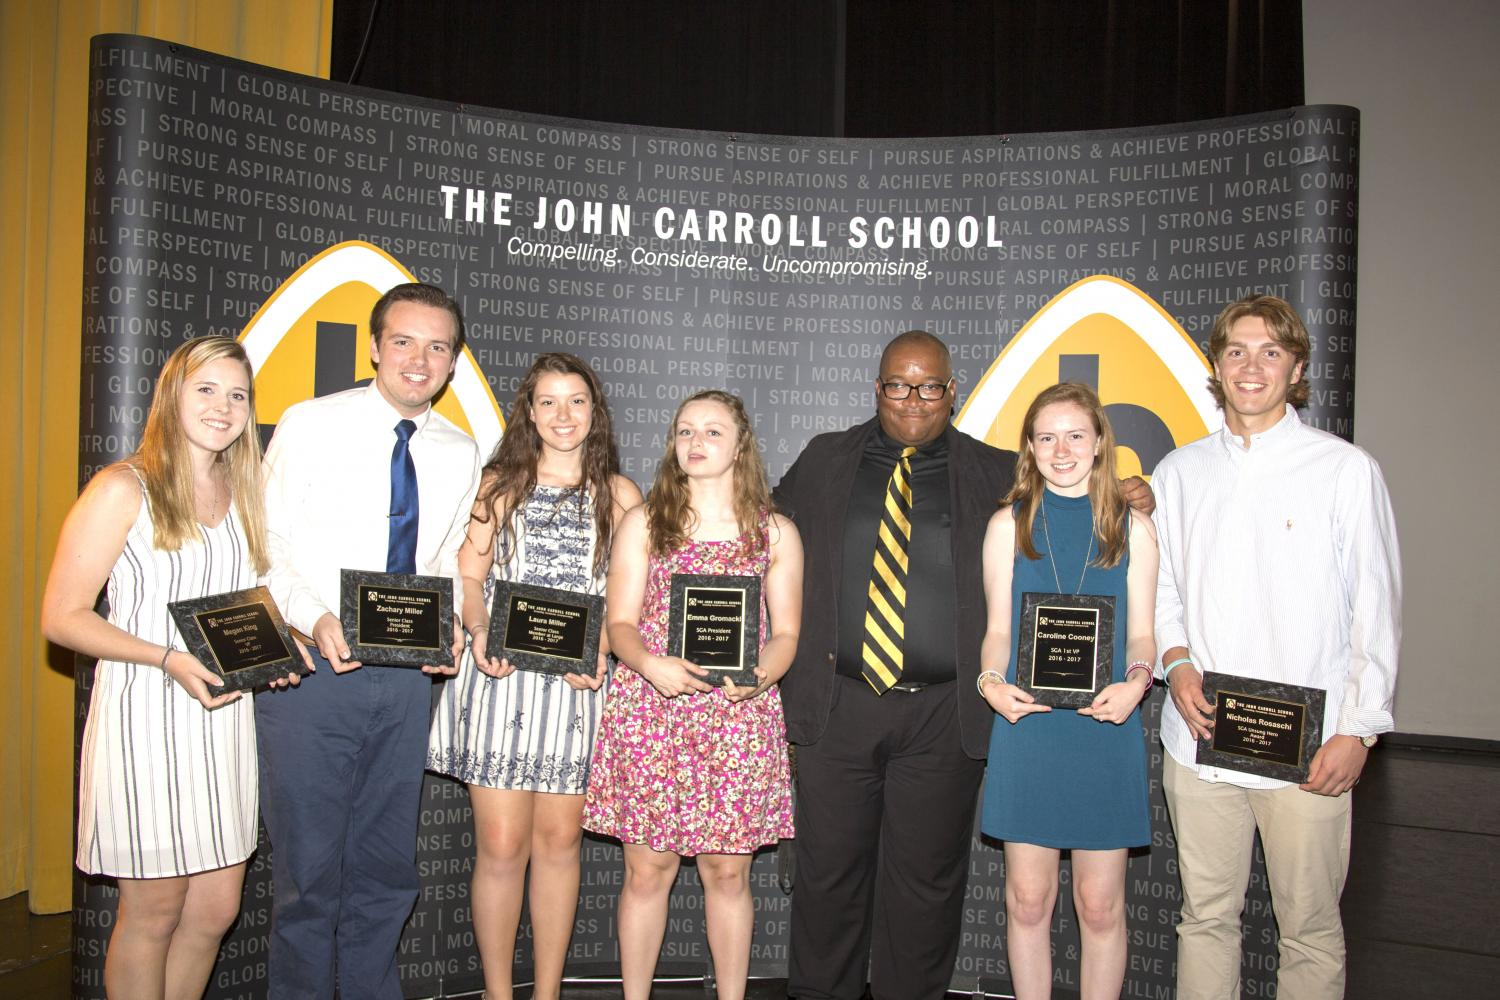 +Senior+representatives+for+the+Student+Government+Association+Megan+King%2C+Zachary+Miller%2C+Laura+Miller%2C+Emma+Gromacki%2C+Caroline+Cooney%2C+and+Shaun+Vines+were+awarded+by+SGA+moderator+Rodney+Johnson+during+the+Senior+Award+Ceremony.+The+Senior+Award+Ceremony+took+place+on+May+18+in+the+auditorium+and+honored+seniors+for+their+achievements.++